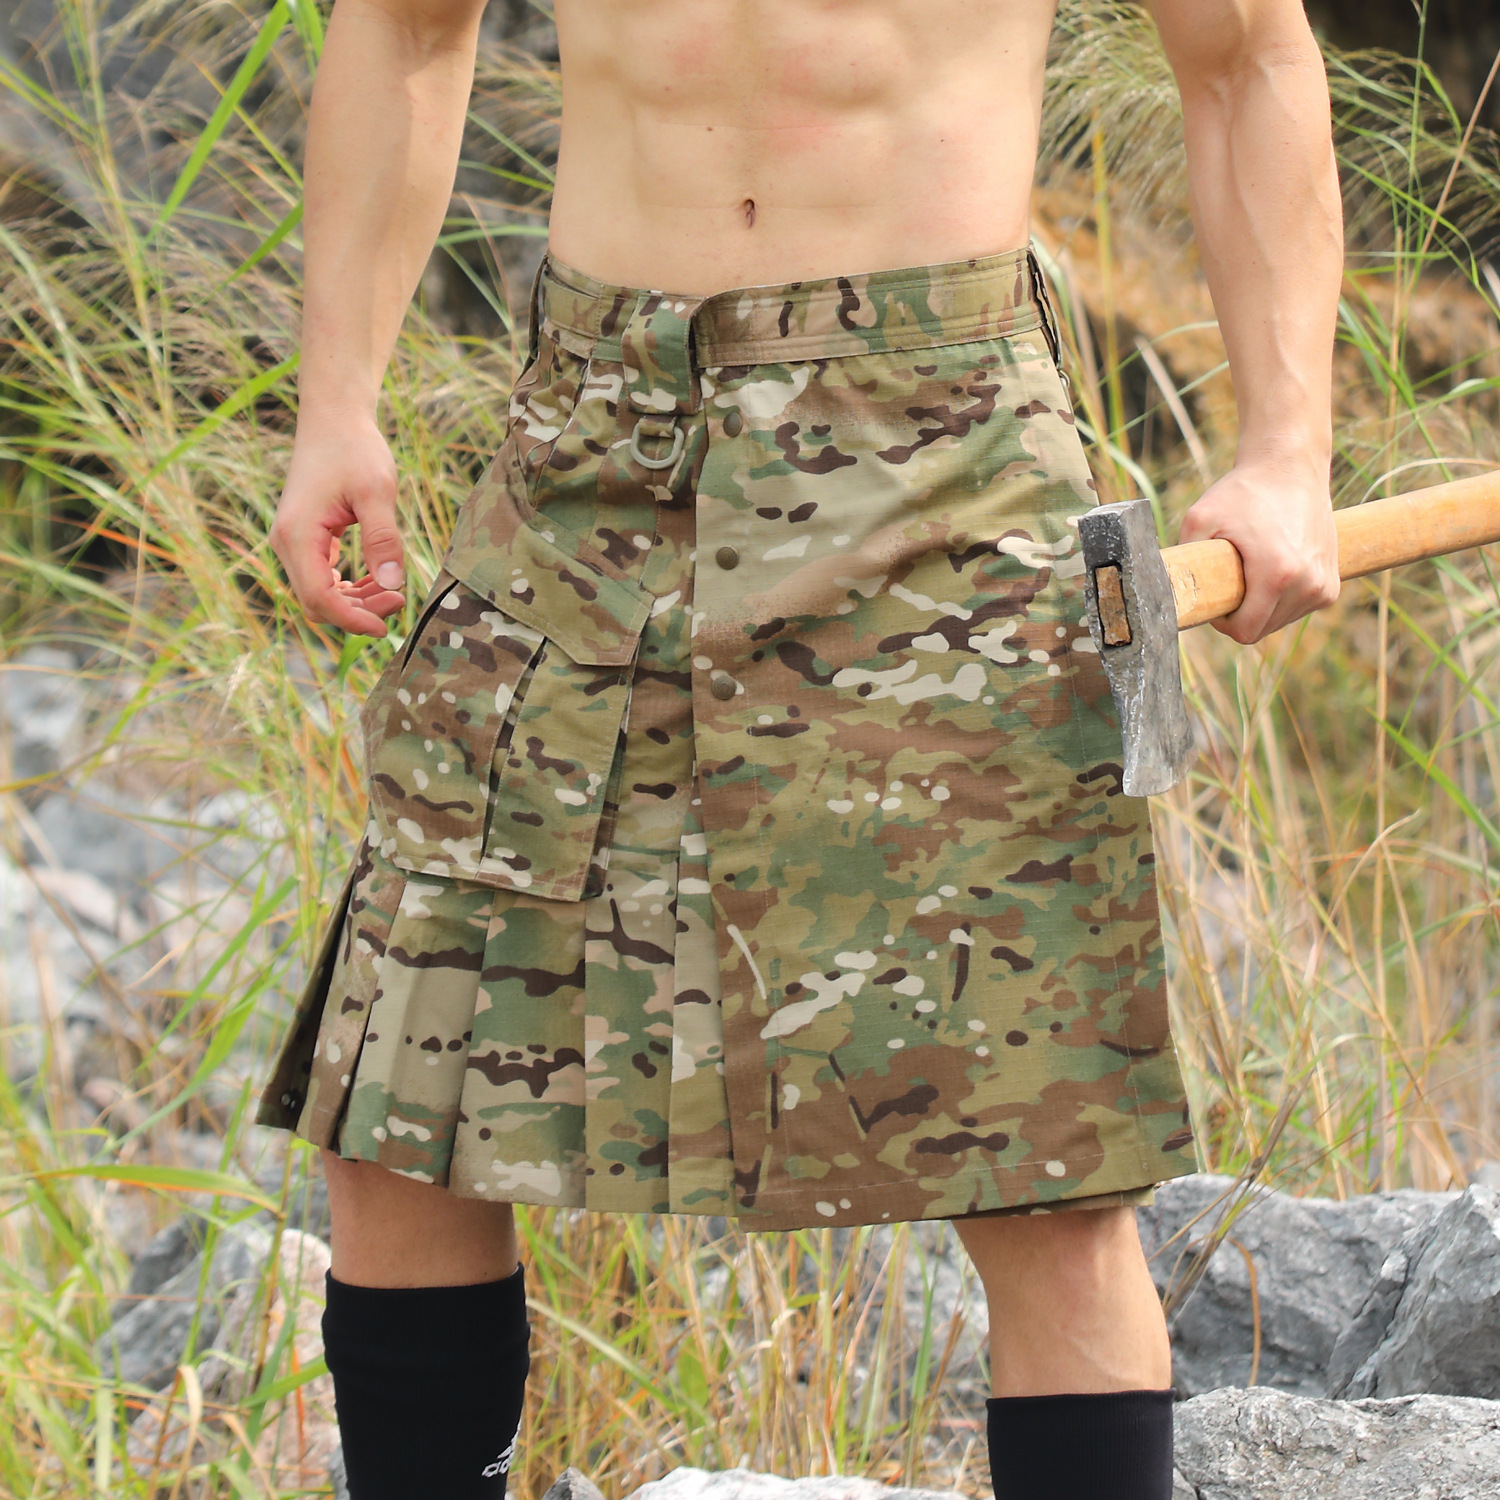 Men's Plaid Scottish Tactical Skirt Camouflage Anti wear Outdoor Camping Hiking Combat Scotland Male Sports Camo Trekking Shorts-in Hiking Shorts from Sports & Entertainment    1